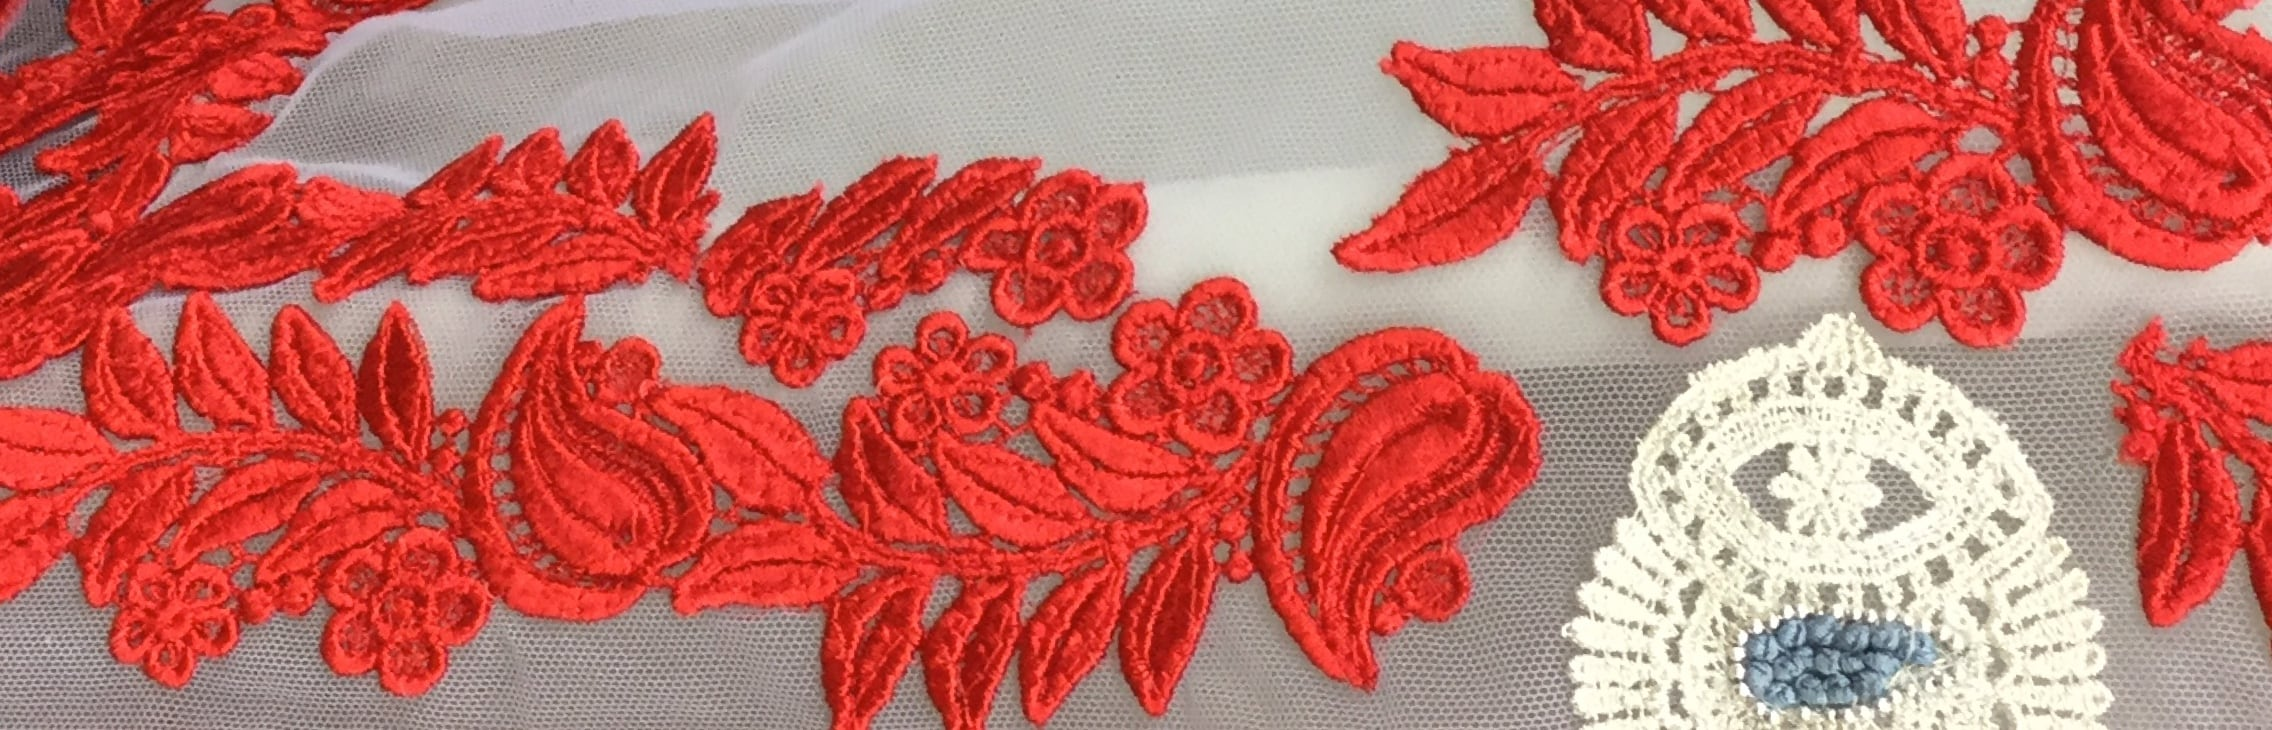 Harlequinade header image: white tule fabric with red embroidery